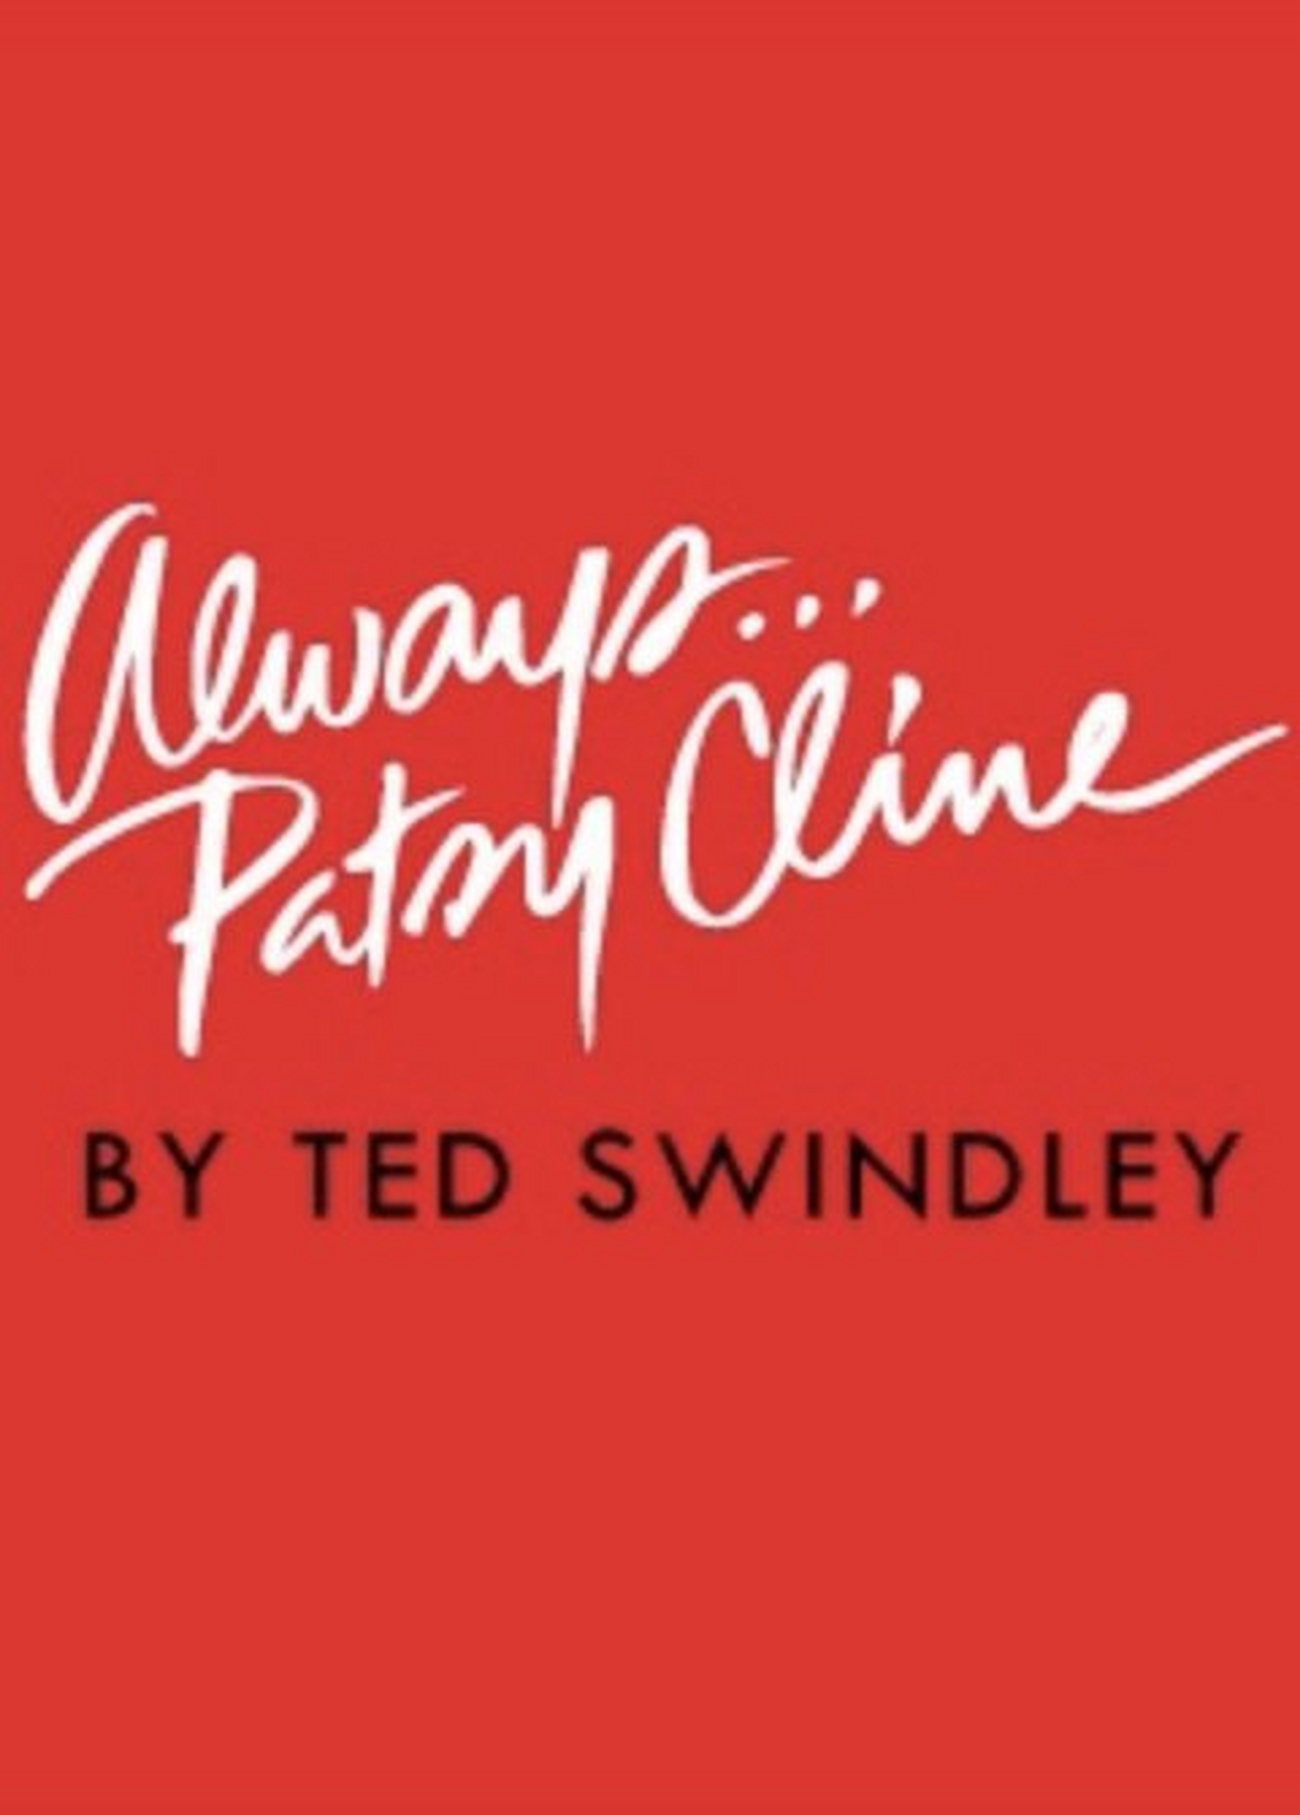 ALWAYS... PATSY CLINE to Play at Florida Repertory Theatre